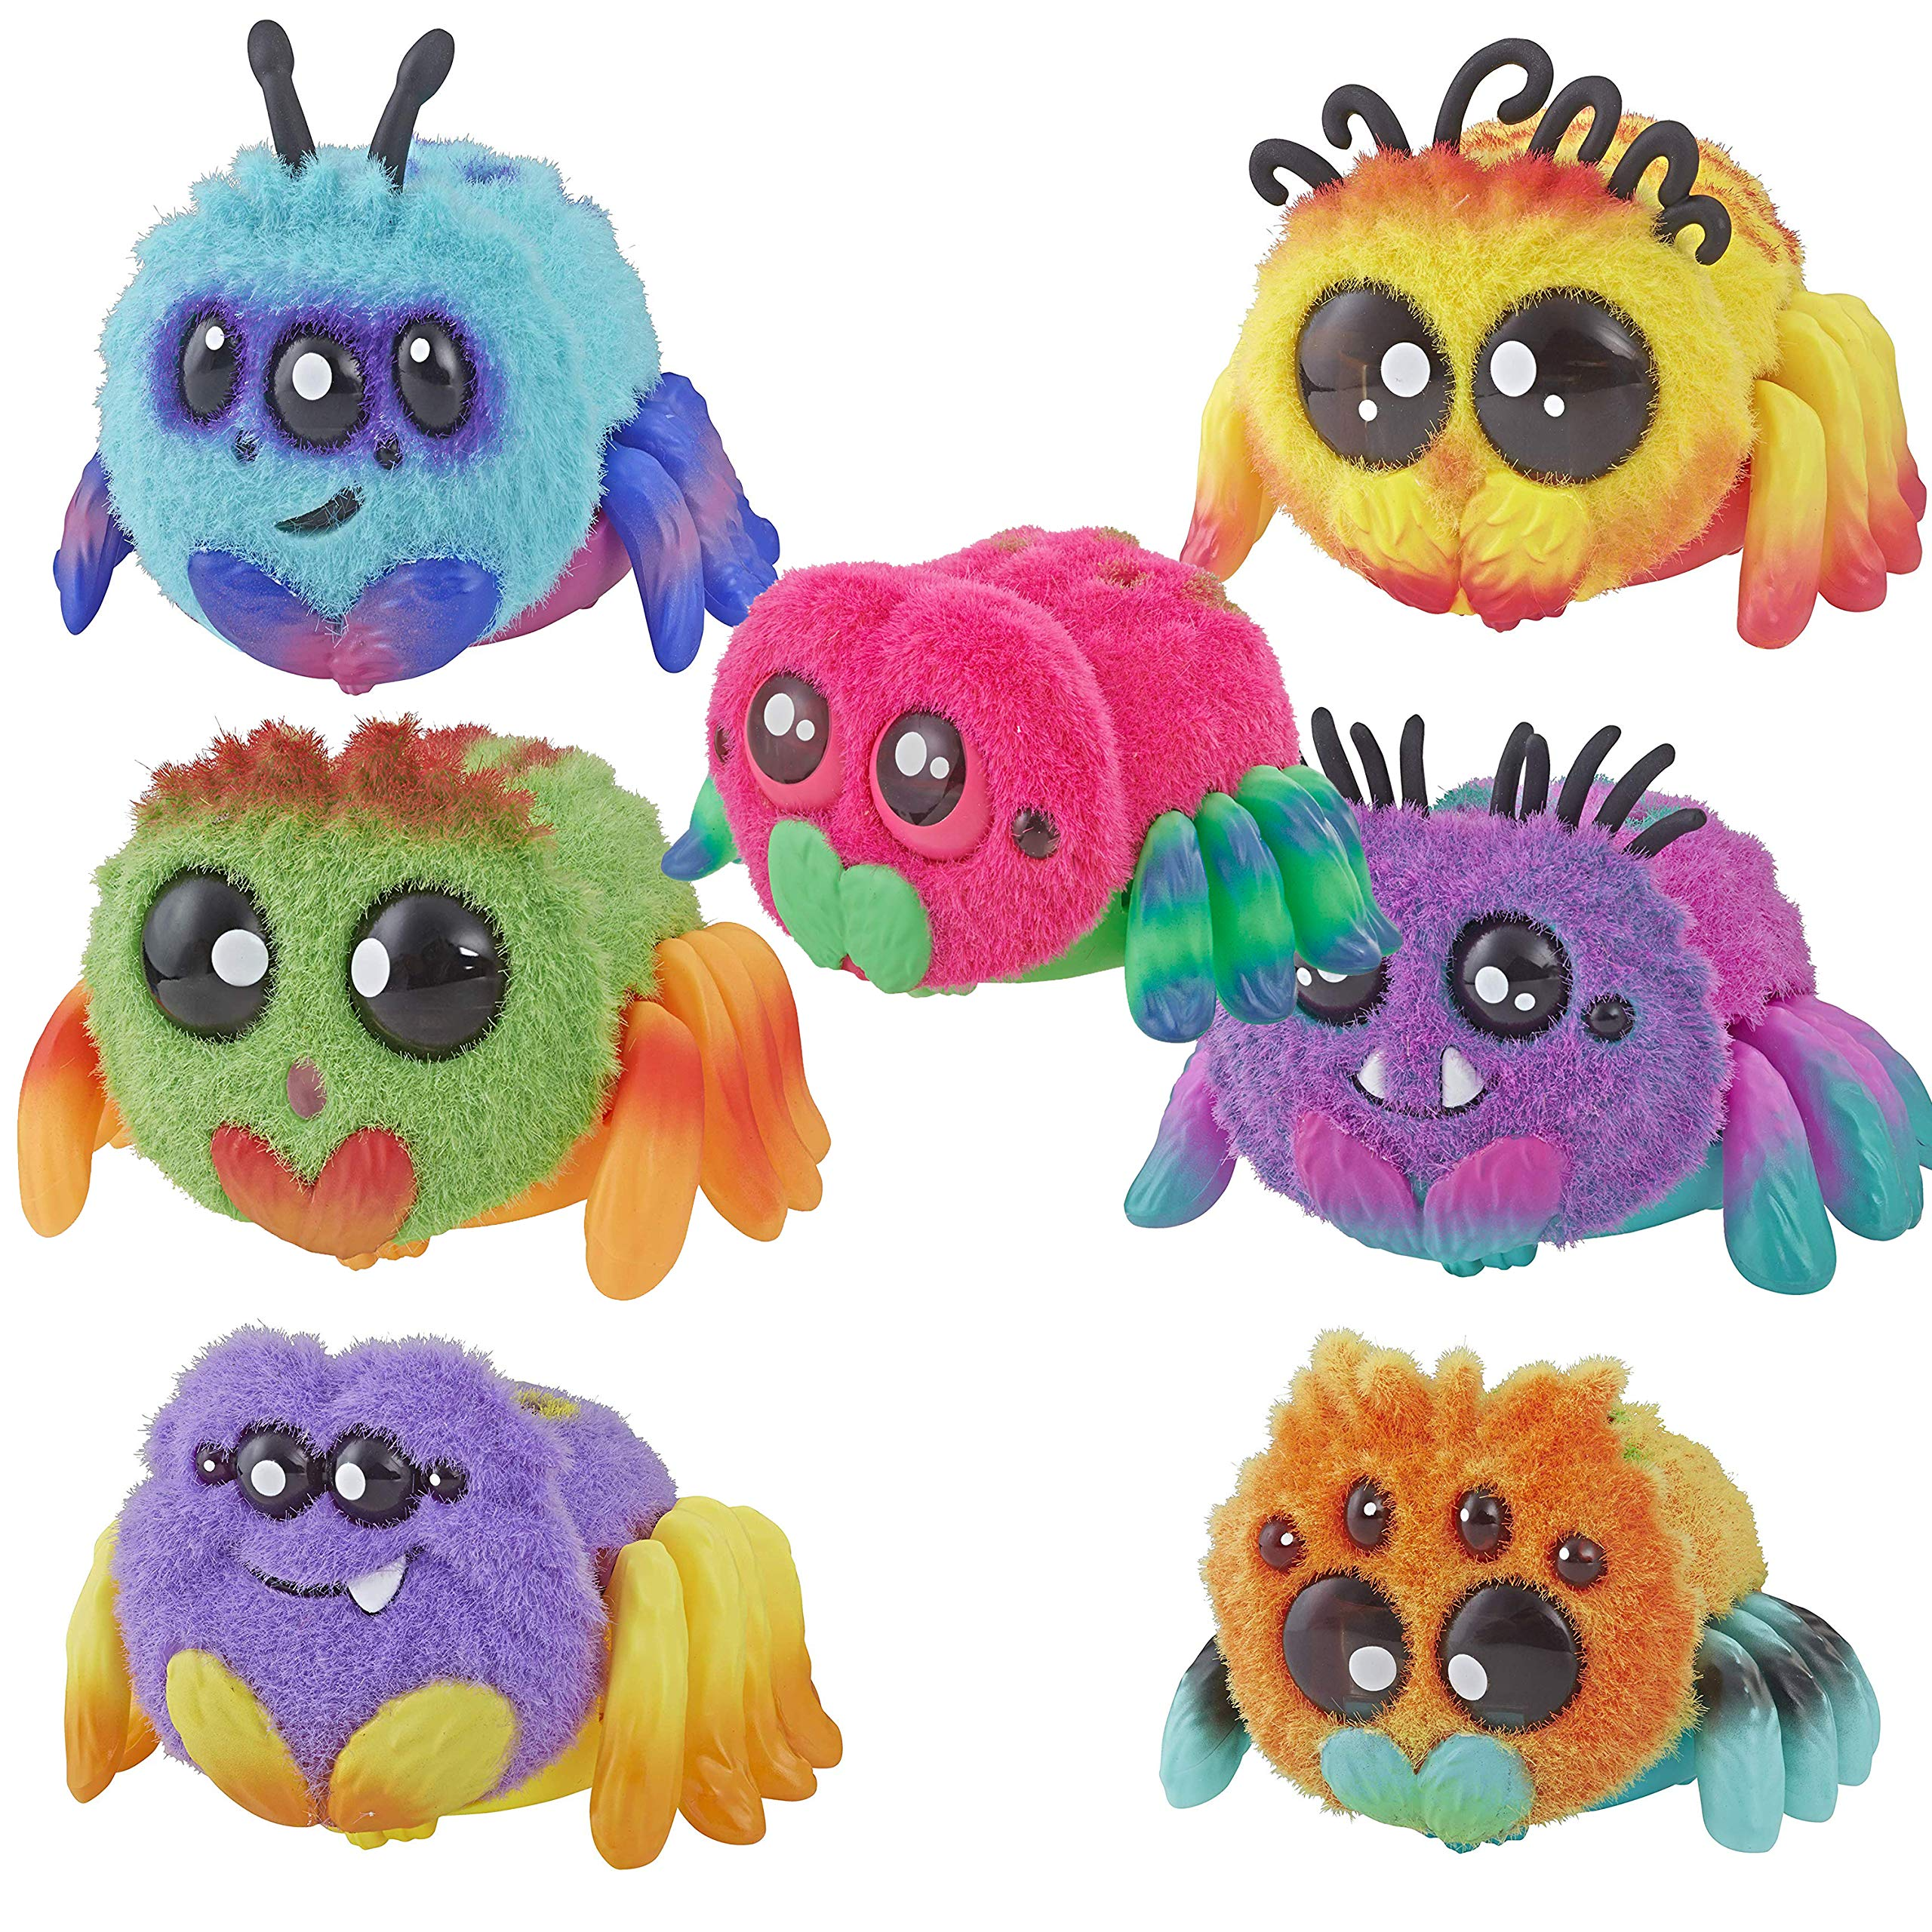 Spider Sammie, FlufferPuff; Harry Scoots, Klutzers, Toofy Spooder, Bo Dangles Peeks Voice-Activated Pet; Ages 5 up - Set of 7 by Spider (Image #1)